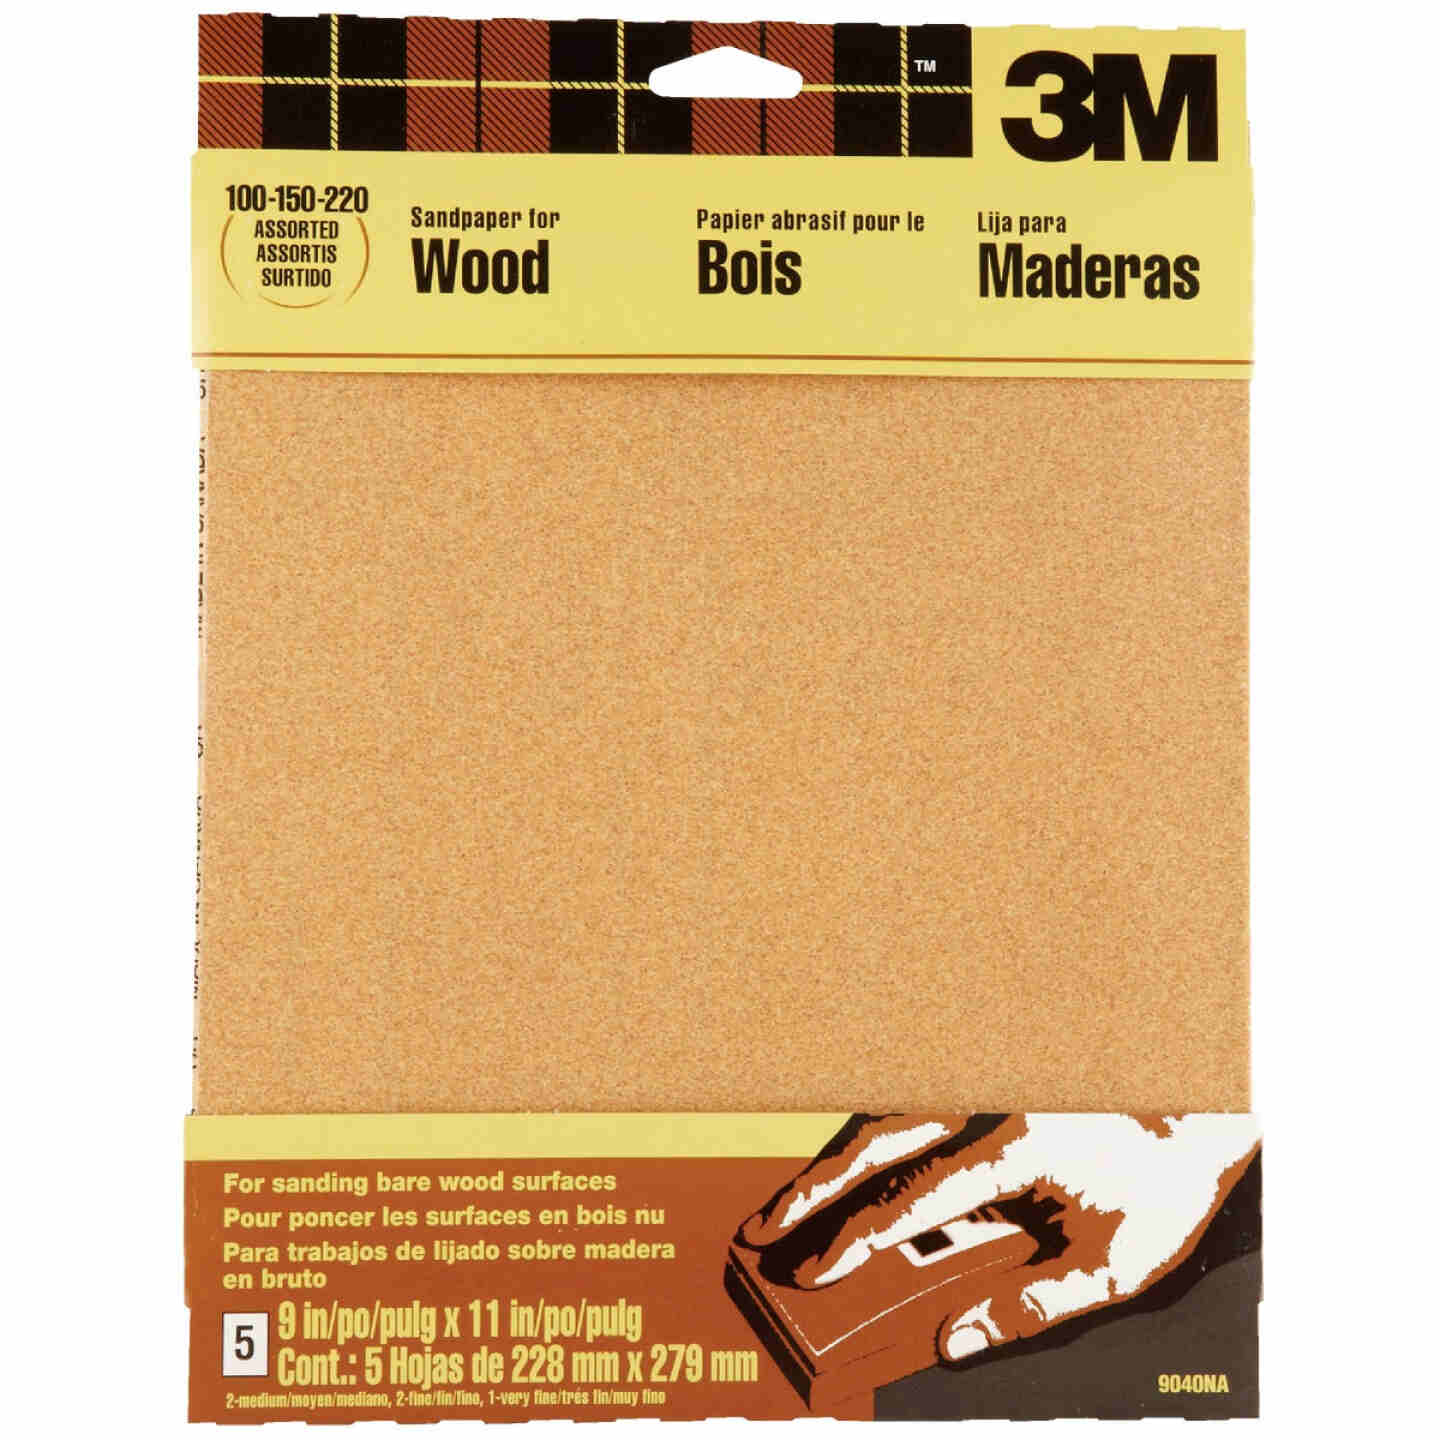 3M Bare Wood 9 In. x 11 In. 220/150/100 Grit Assorted Grade Sandpaper (5-Pack) Image 1